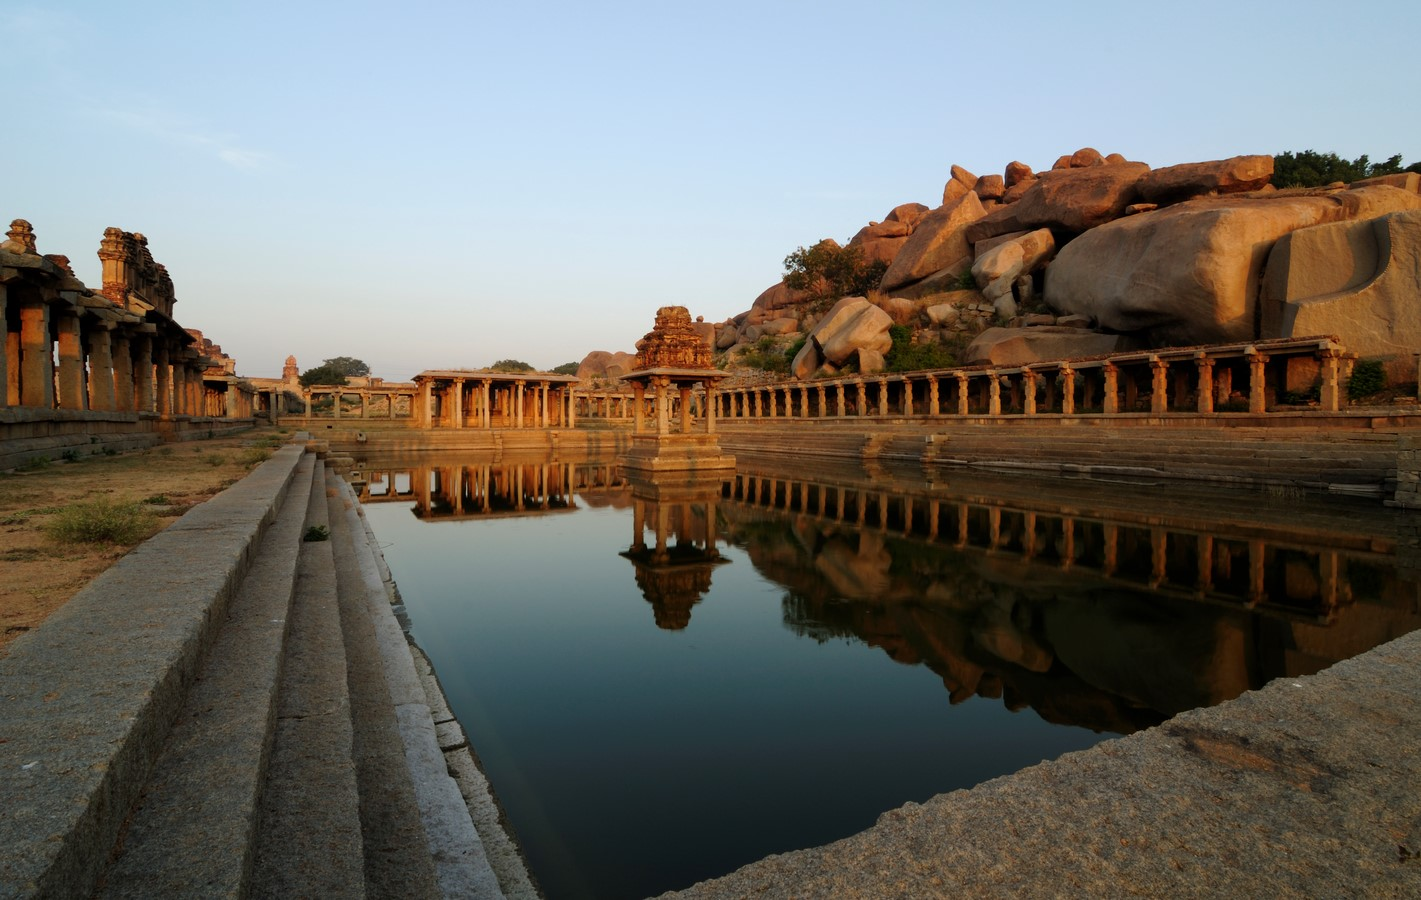 How water led to the evolution of architecture in ancient India - Sheet13